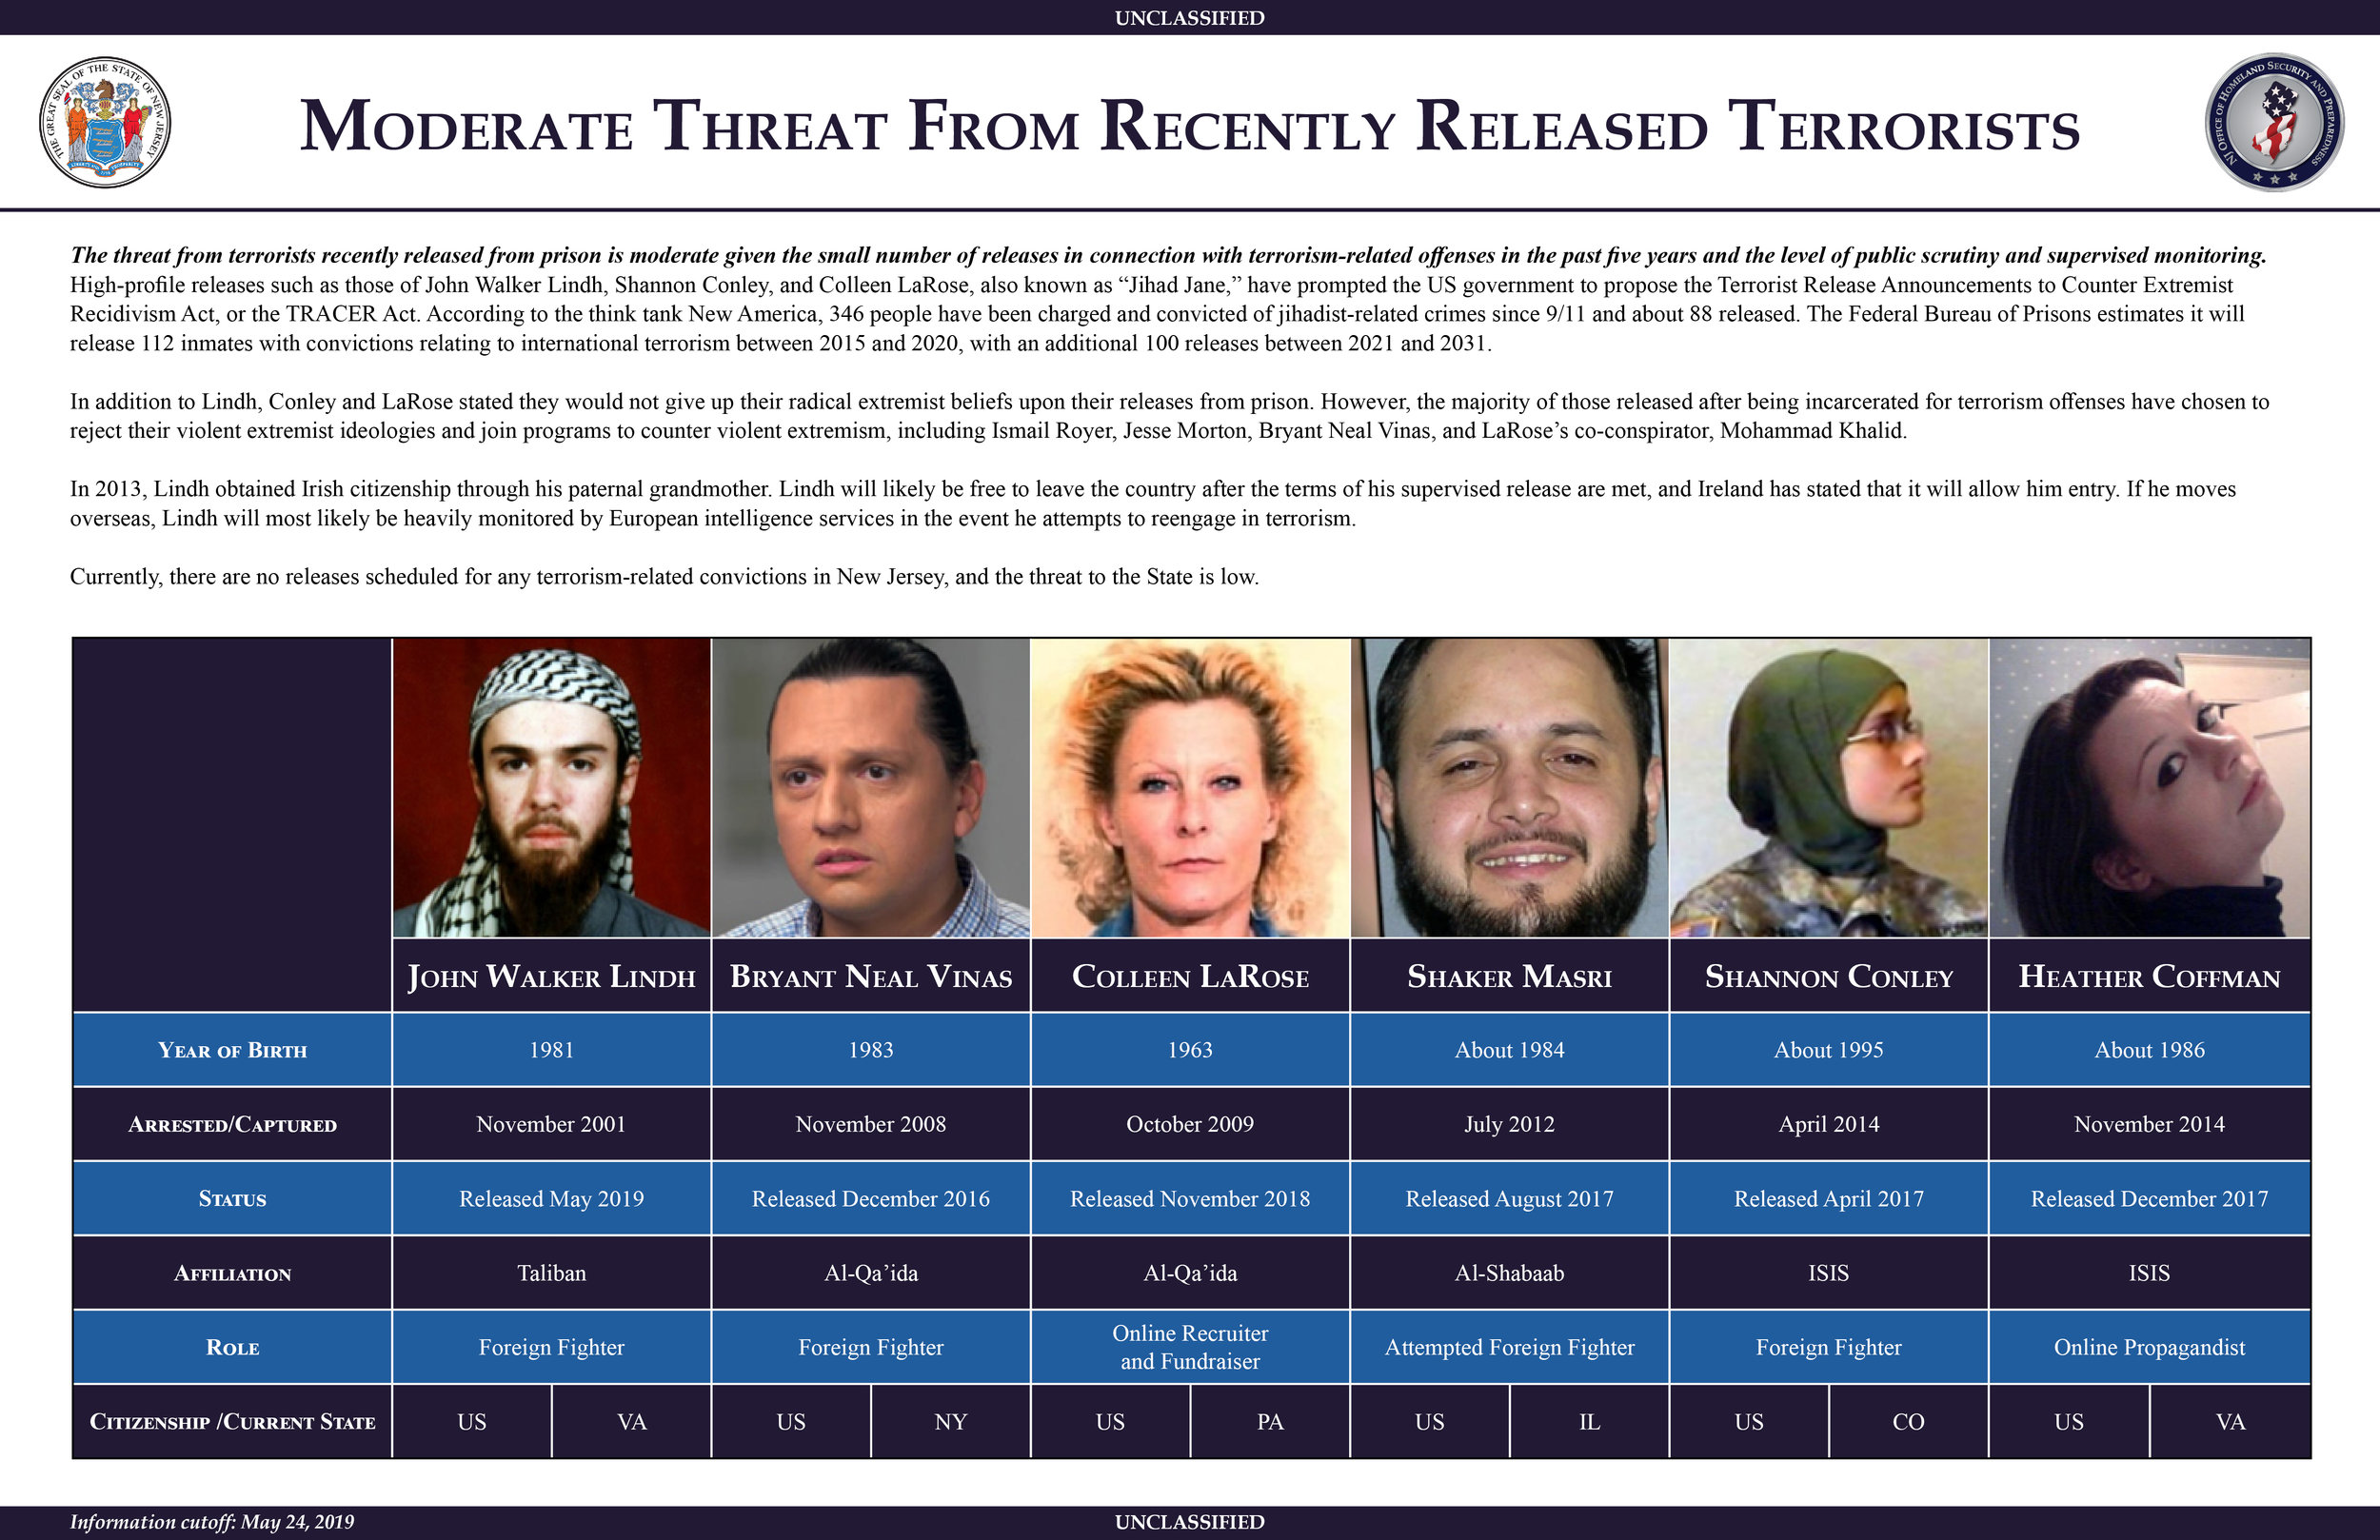 Moderate Threat From Recently Released Terrorists.jpg